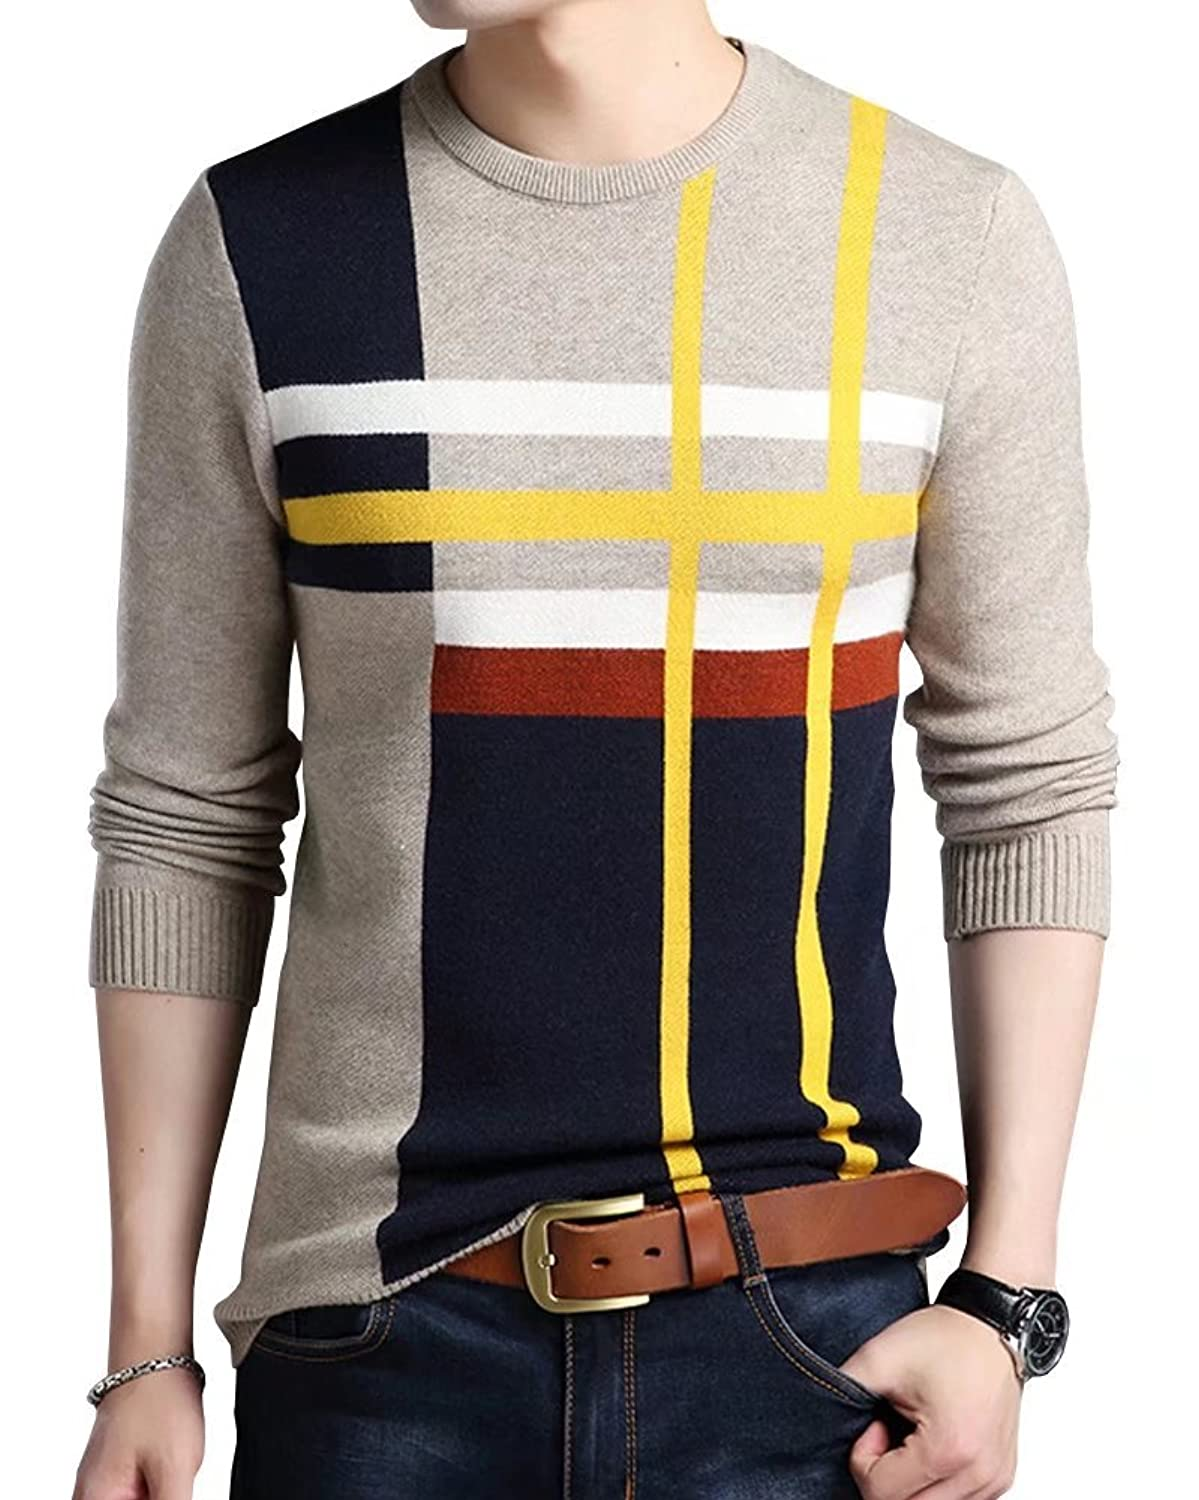 Men's Vintage Style Sweaters – 1920s to 1960s Wxian Mens Winter Round Neck Knitting Warm Pullover Sweater  AT vintagedancer.com